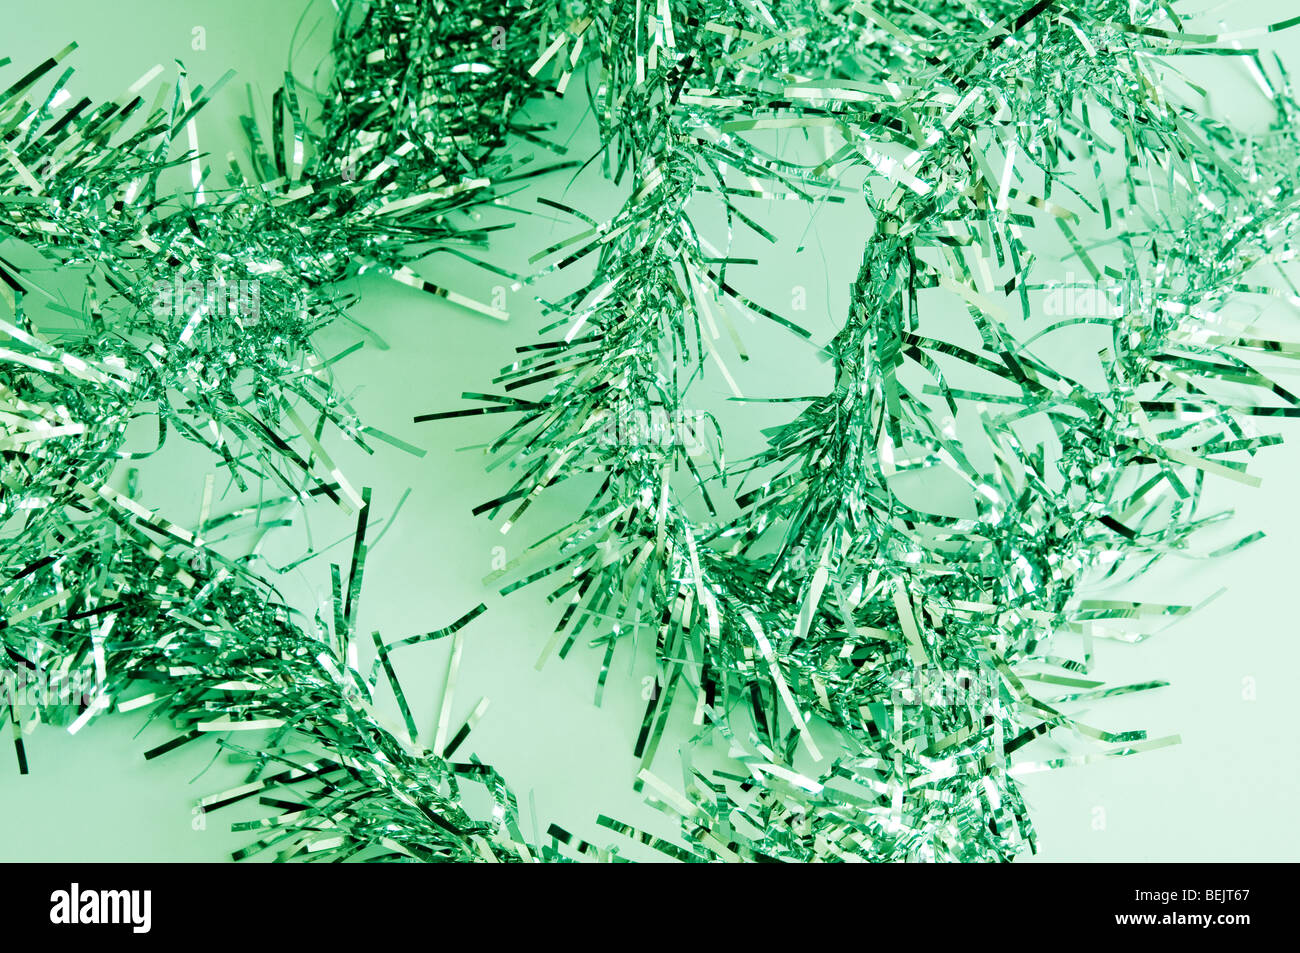 Green Christmas Tinsel on a pale green background - Stock Image